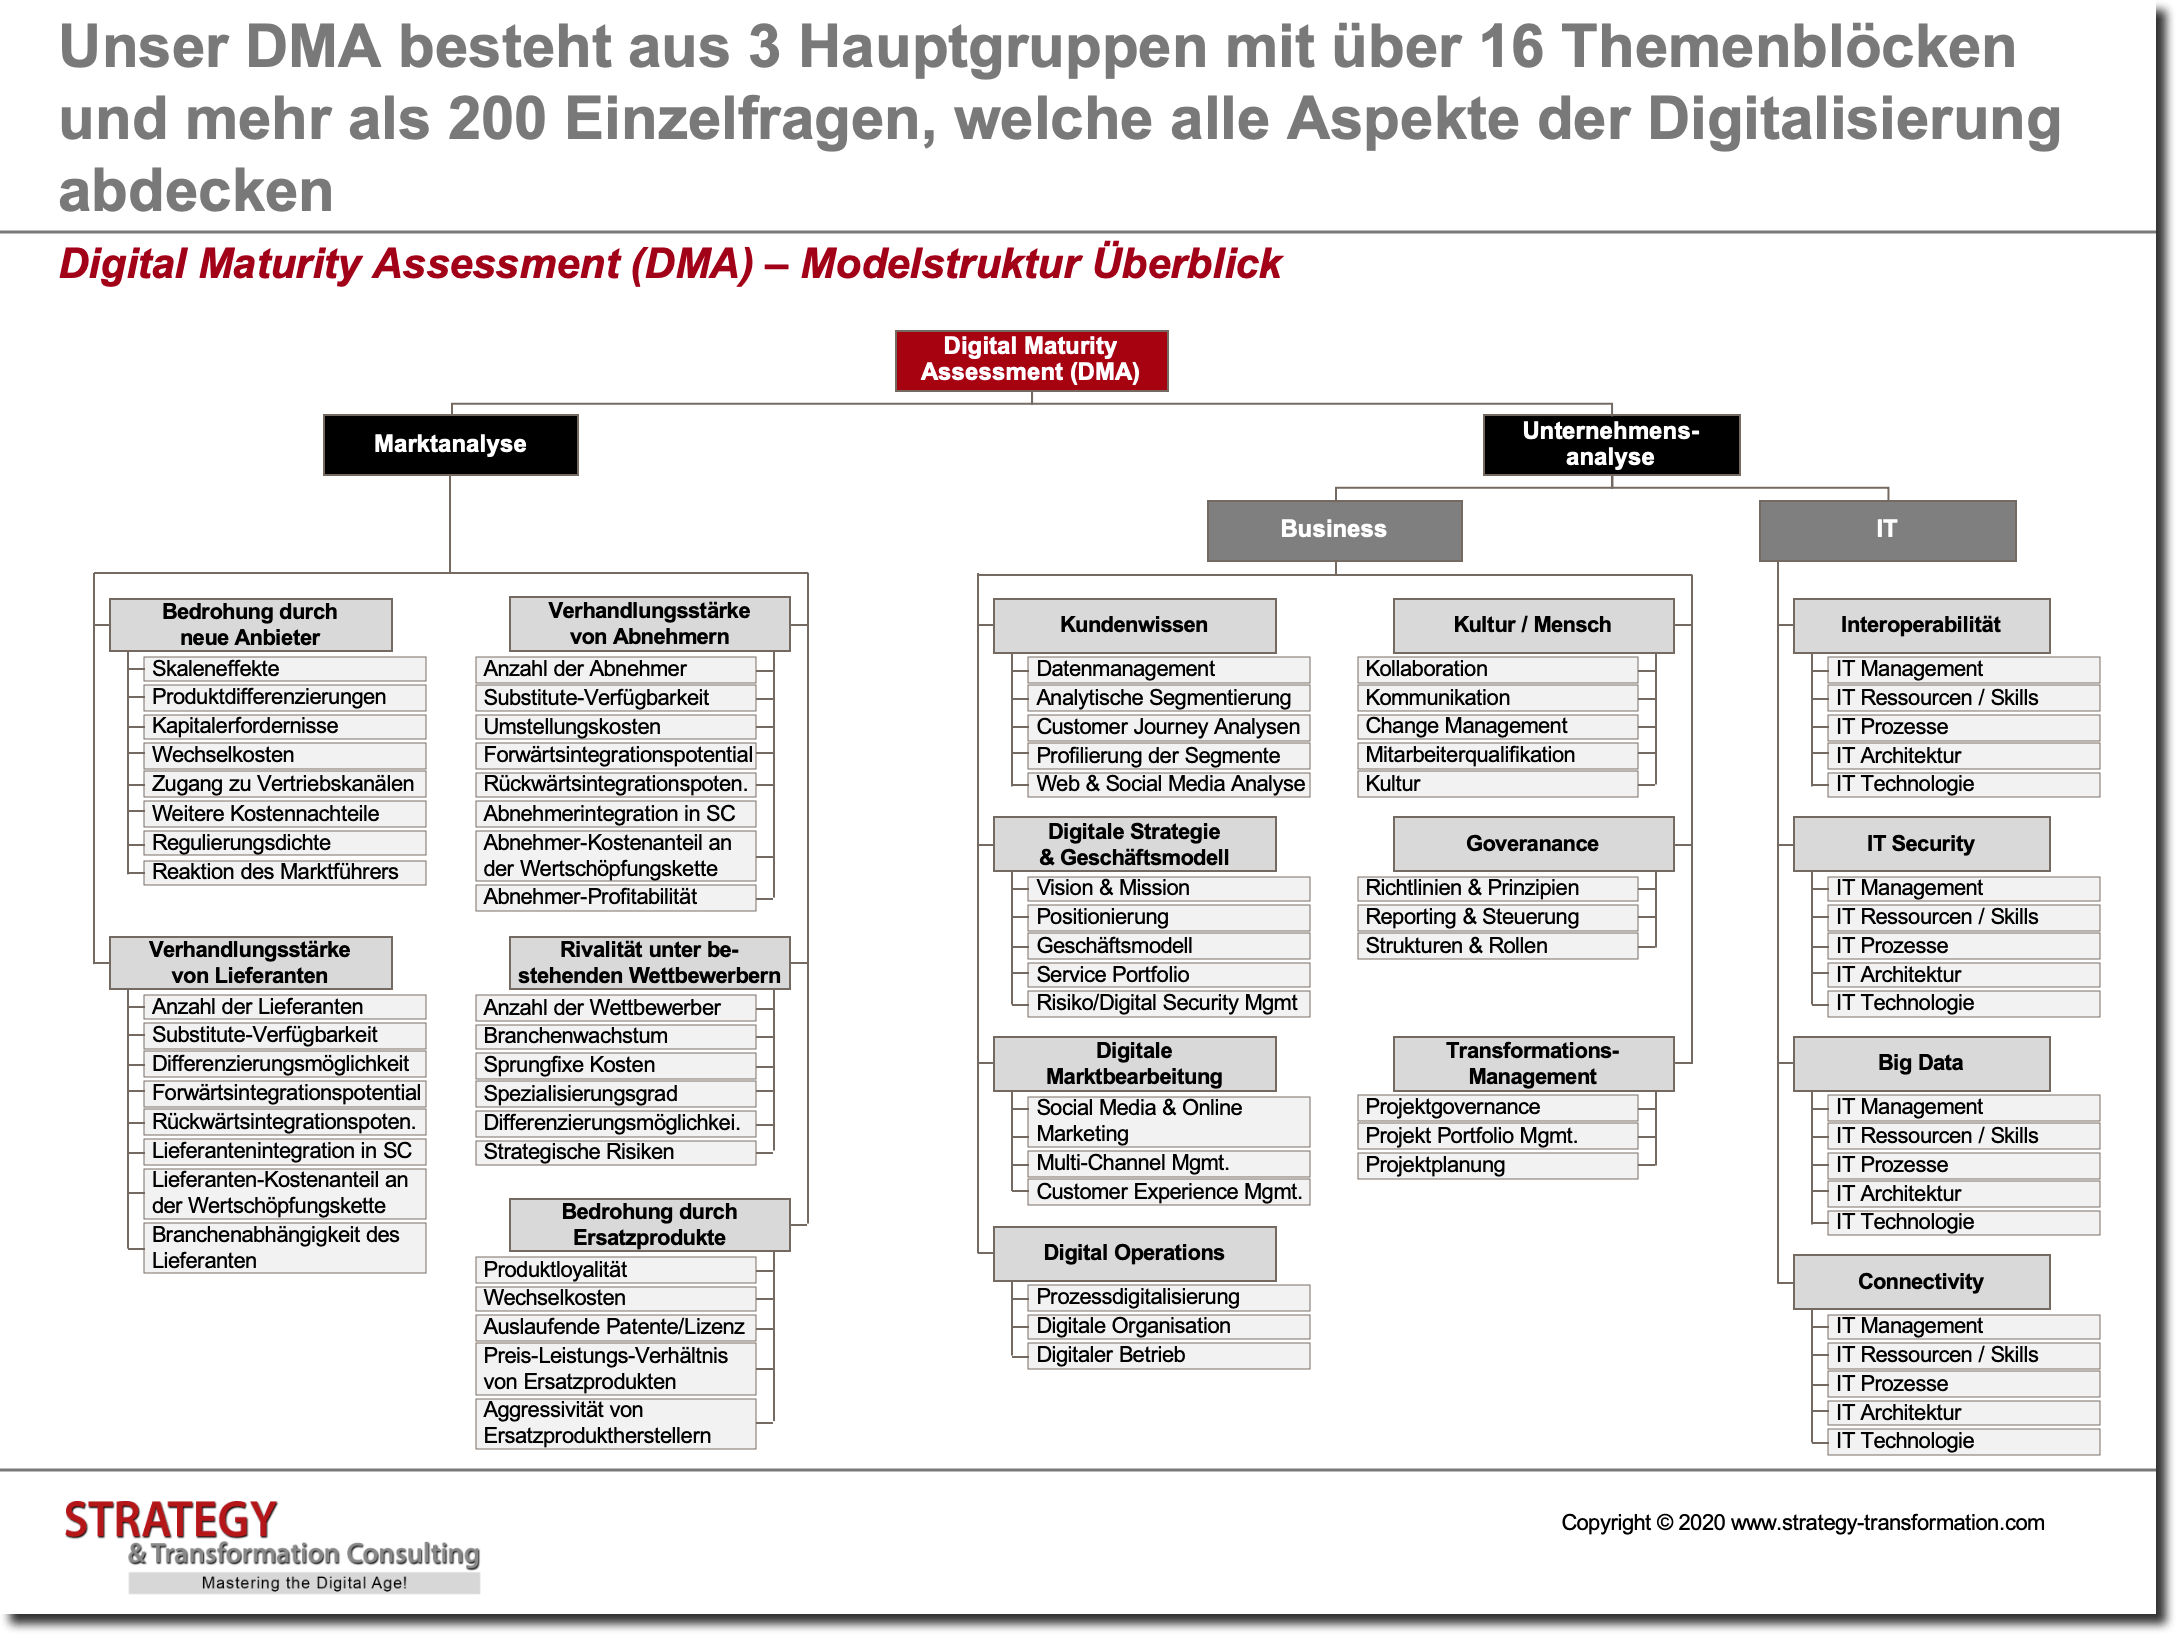 Digital Maturity Assessment (DMA) – Modelstruktur Überblick